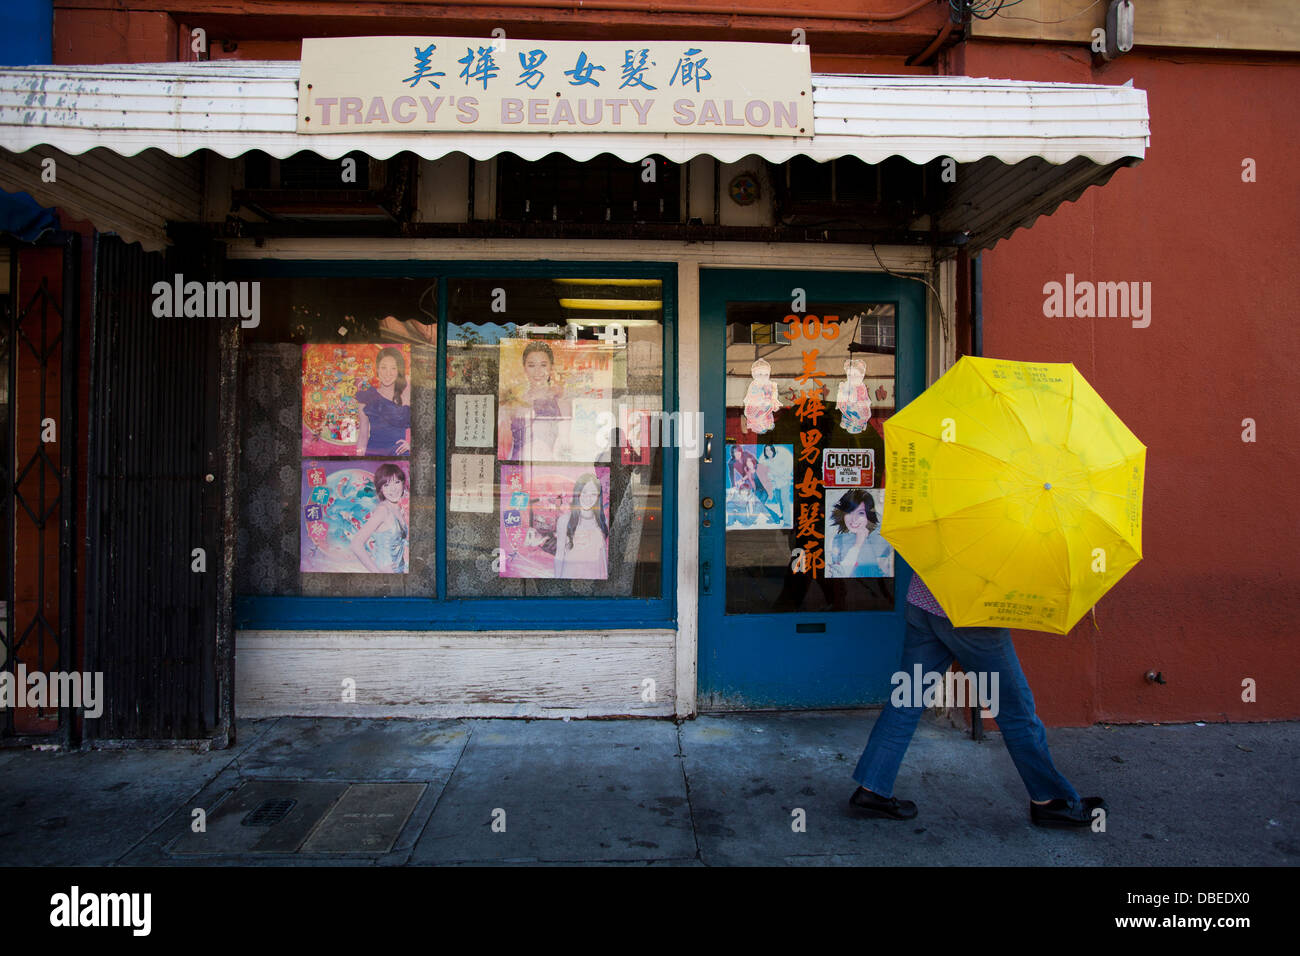 Record breaking heat in Chinatown. Women use umbrellas for shade. Los Angeles, California - Stock Image